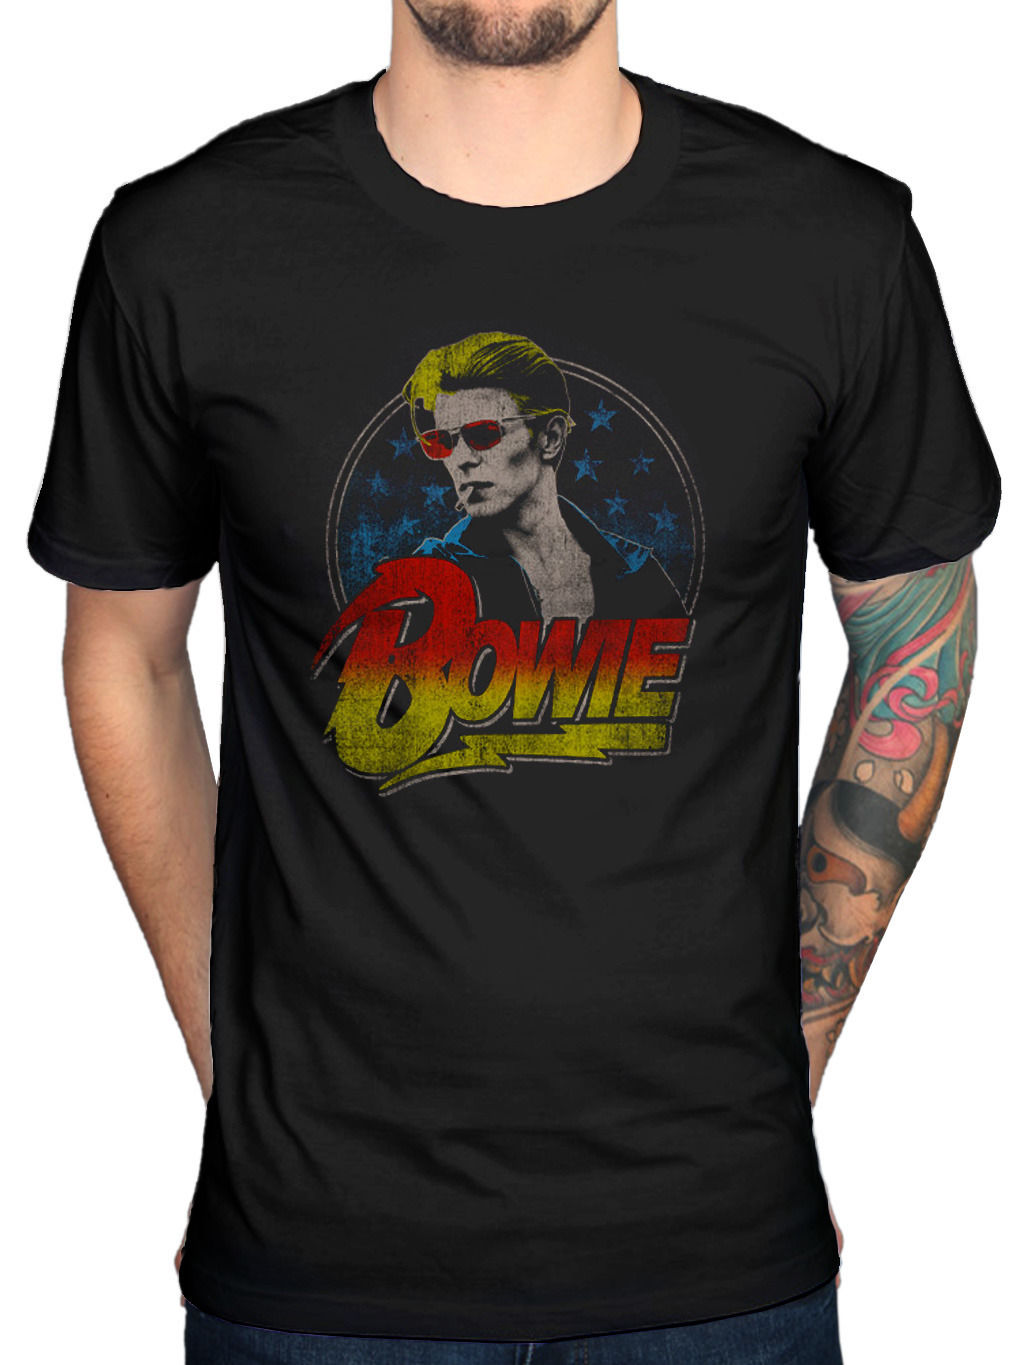 Gildan Fashion Short Sleeve David Bowie Rauchen Grafik T Shirt R.I.P. Legend Jagger Printed T Shirt O-Neck Cool Tops